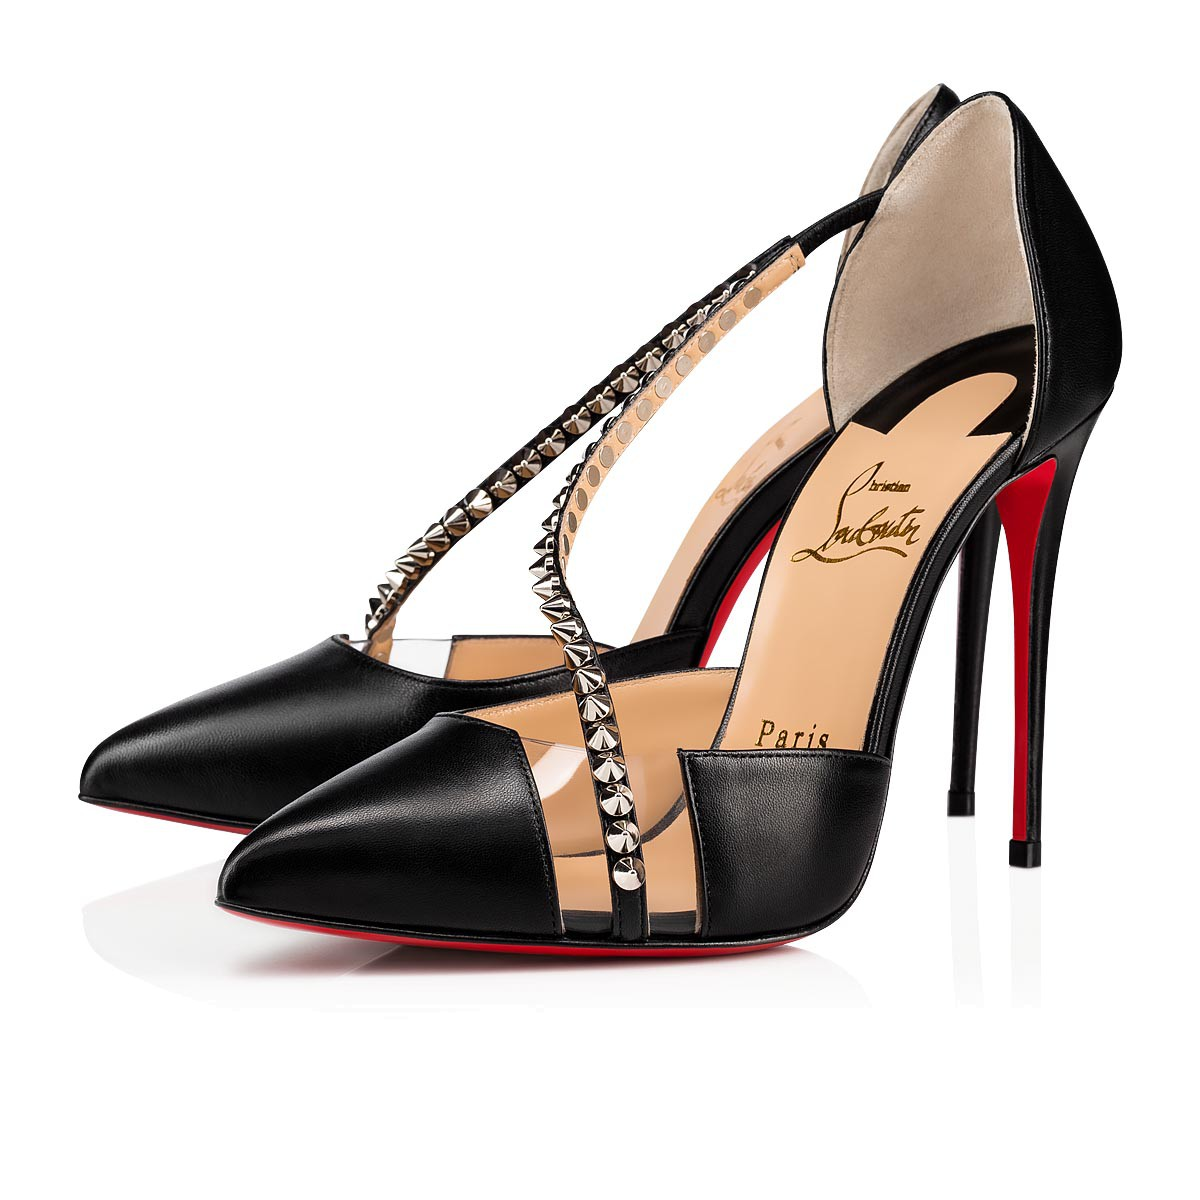 christianlouboutin-spikecross